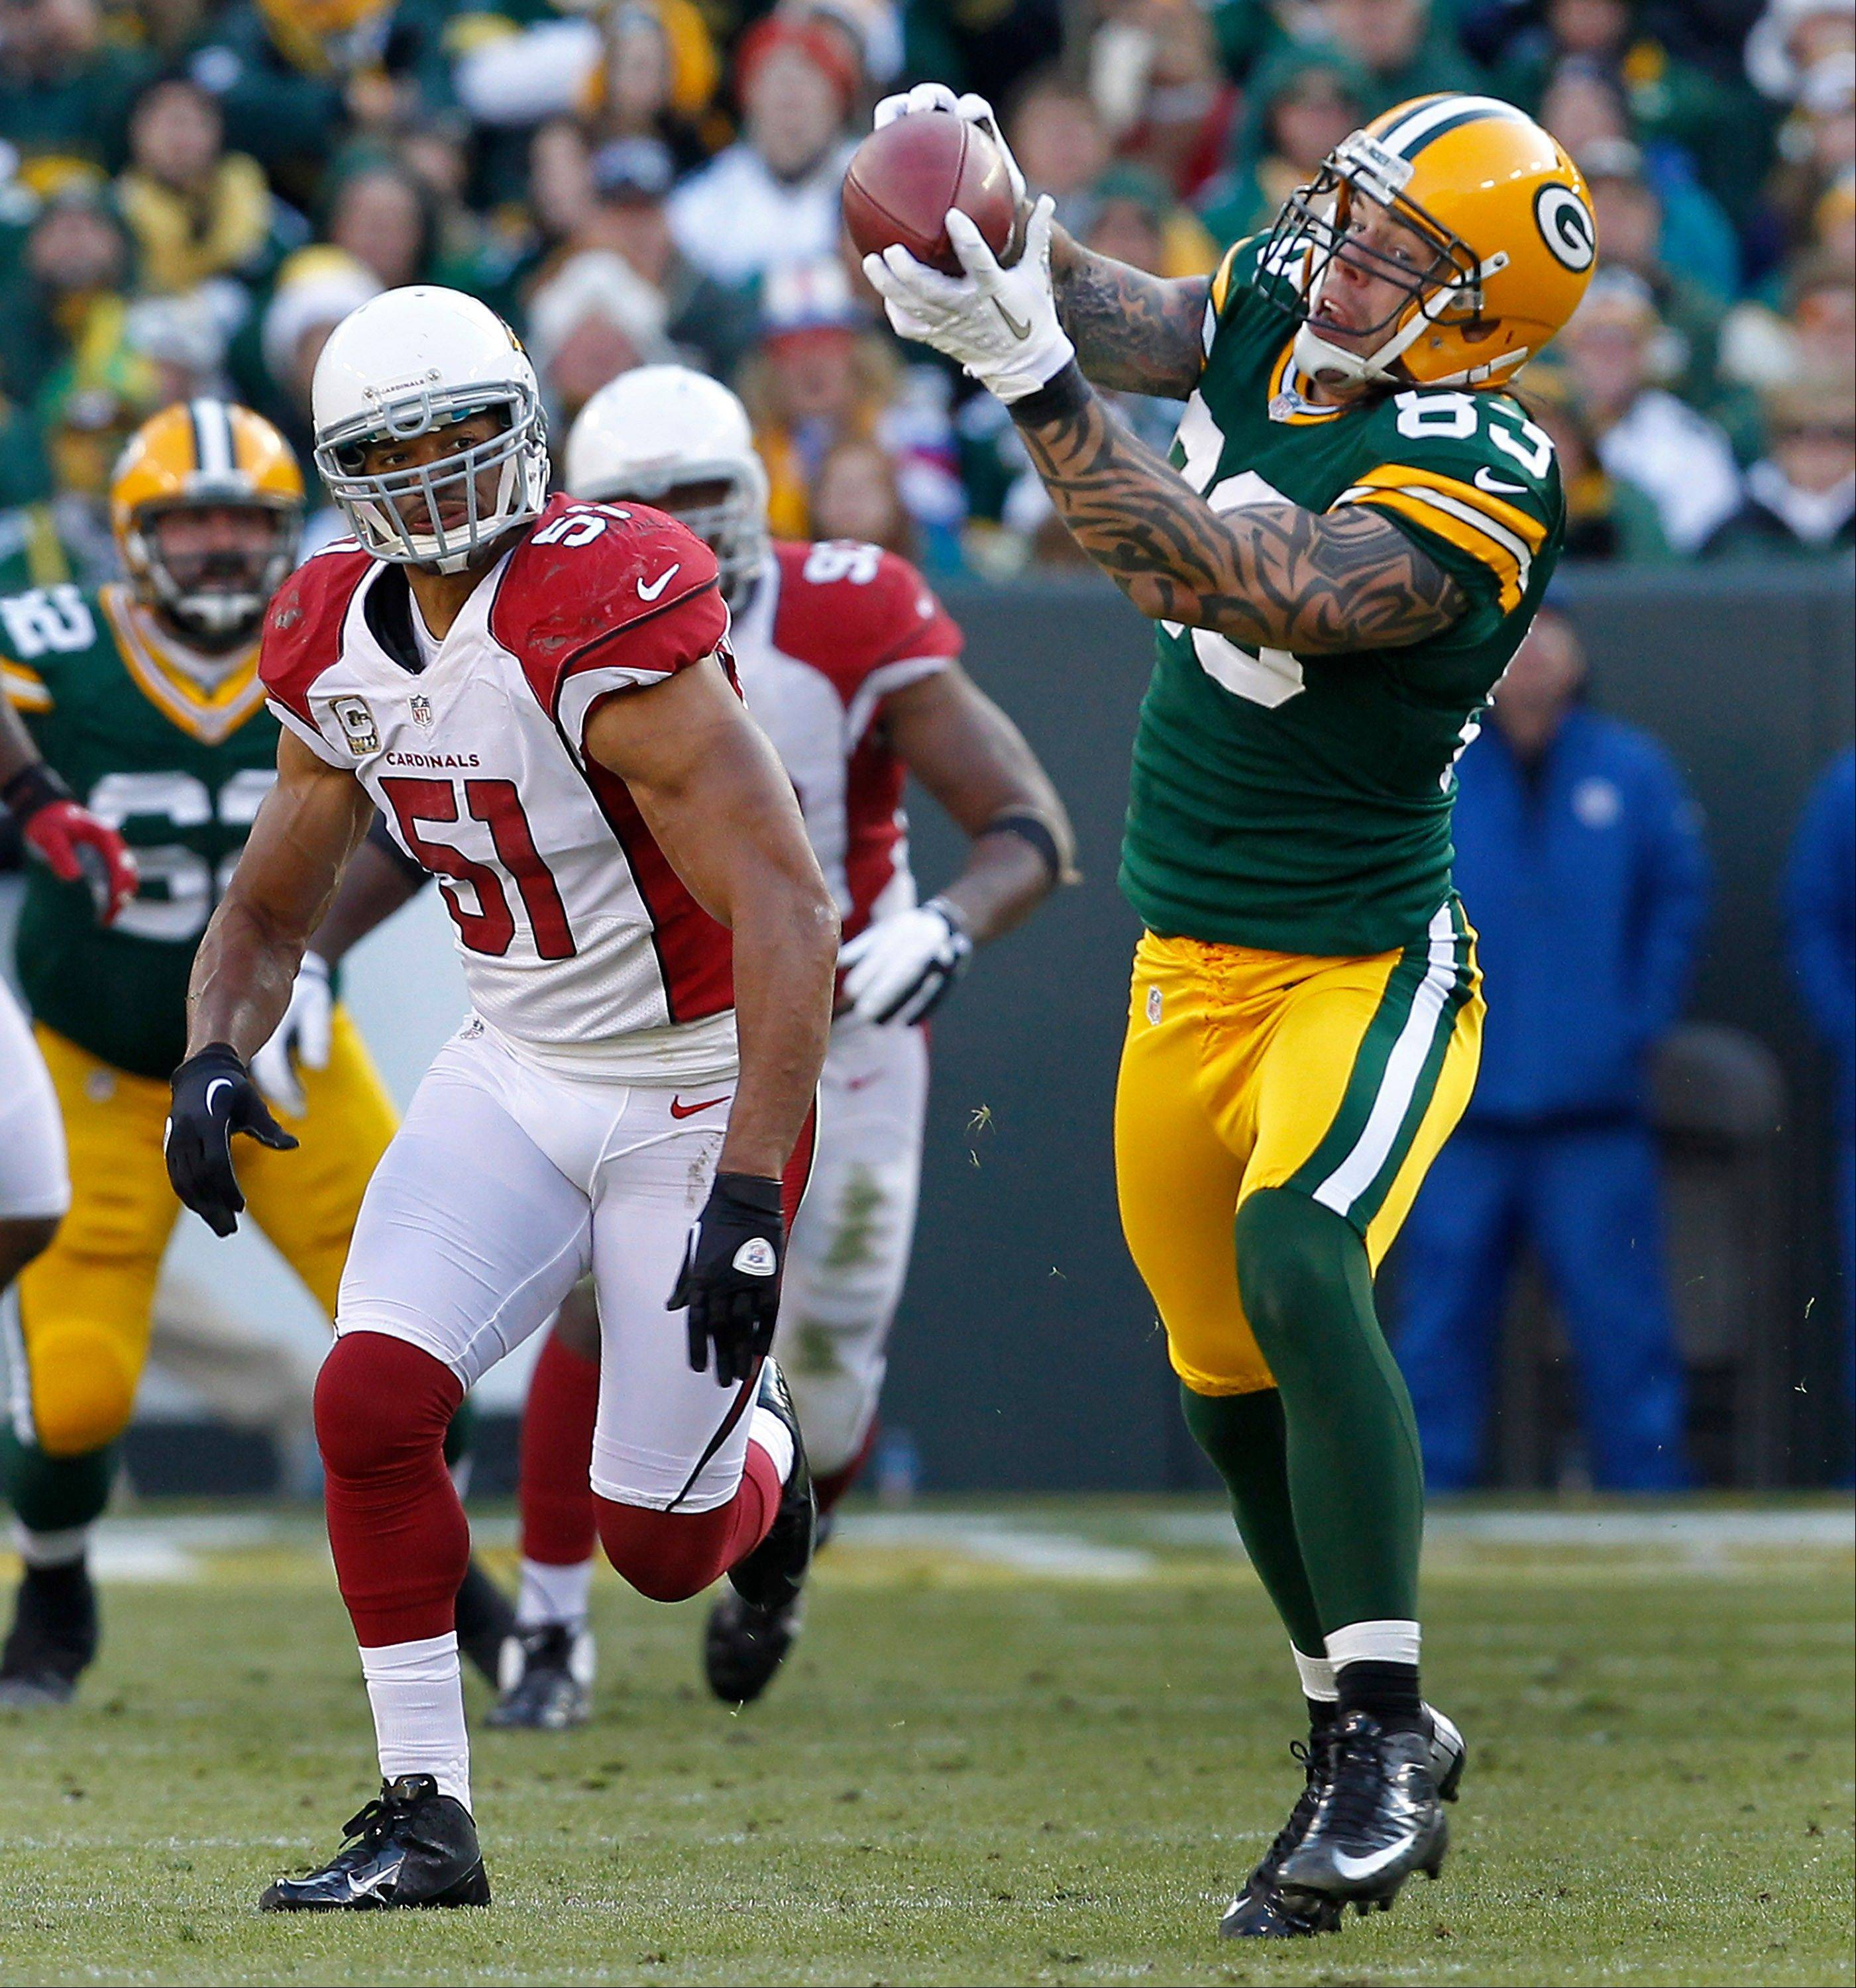 Green Bay Packers tight end Tom Crabtree pulls a pass in for a 72-yard touchdown in front of Arizona Cardinals linebacker Paris Lenon during the second half Sunday in Green Bay, Wis.